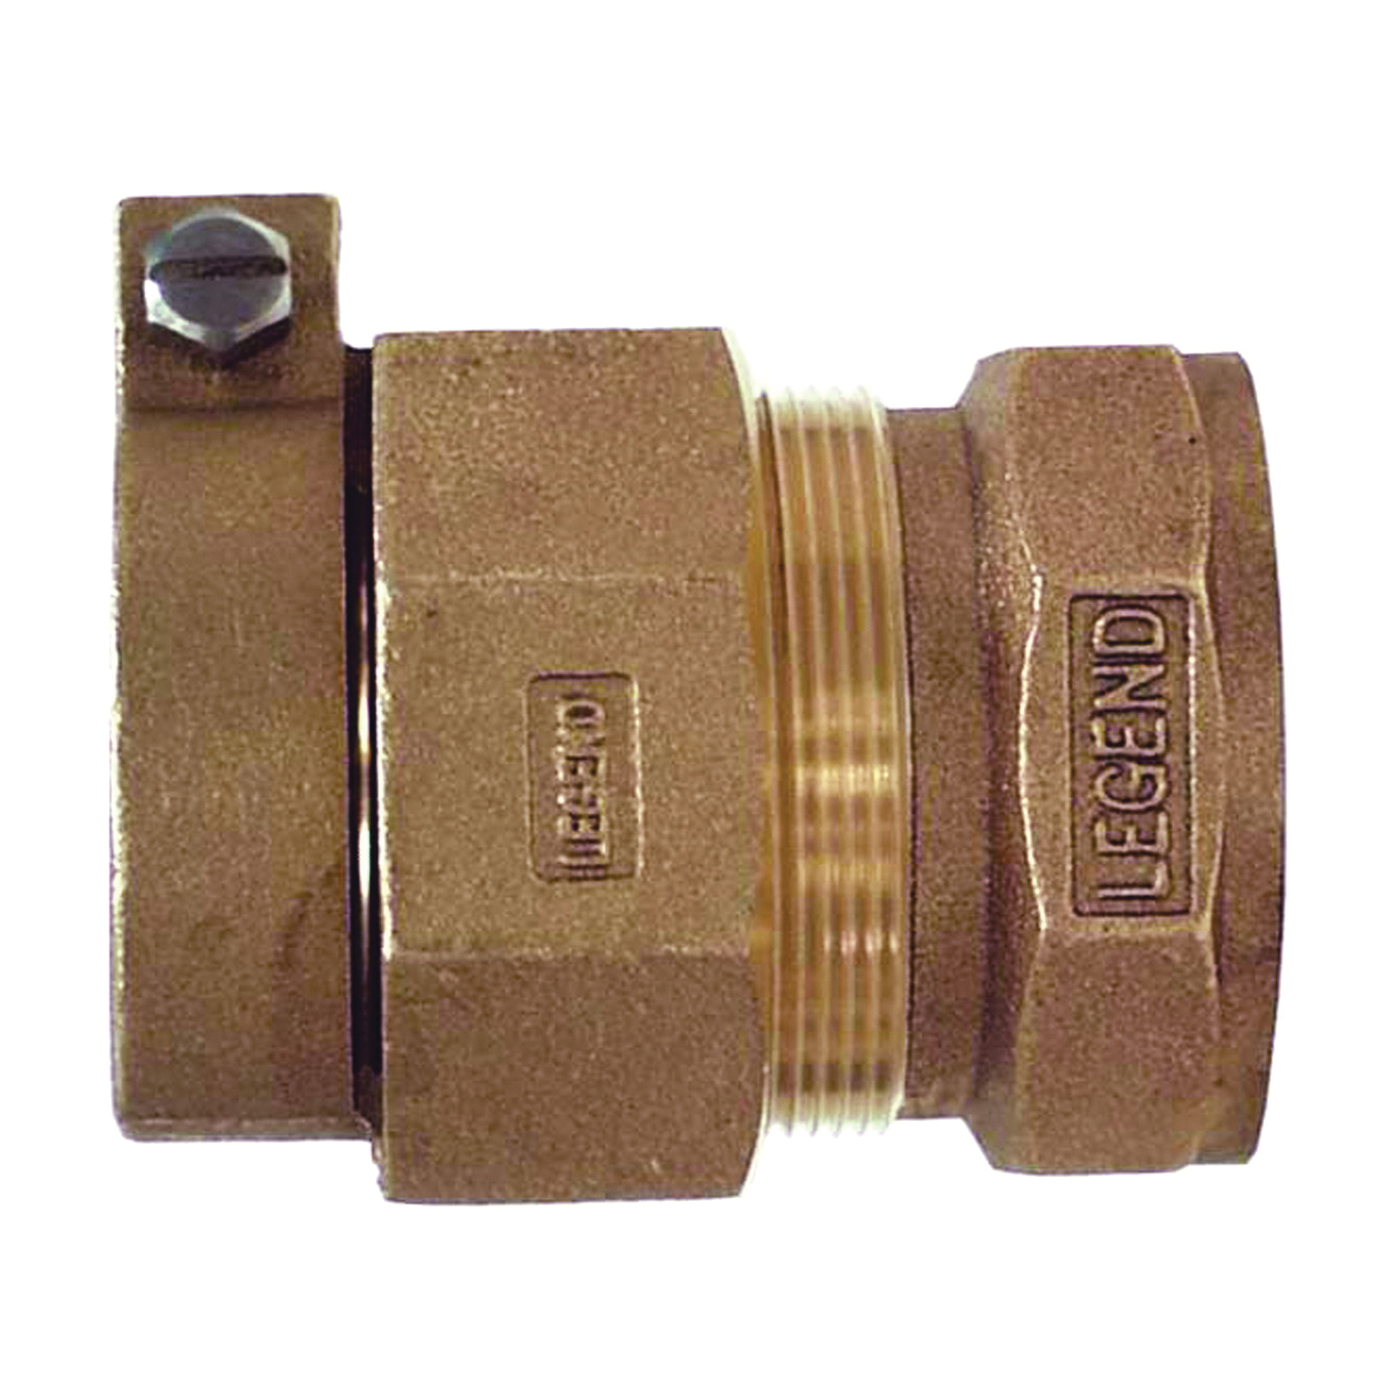 Picture of Legend T-4305NL Series 313-274NL Compression Coupler, 3/4 in